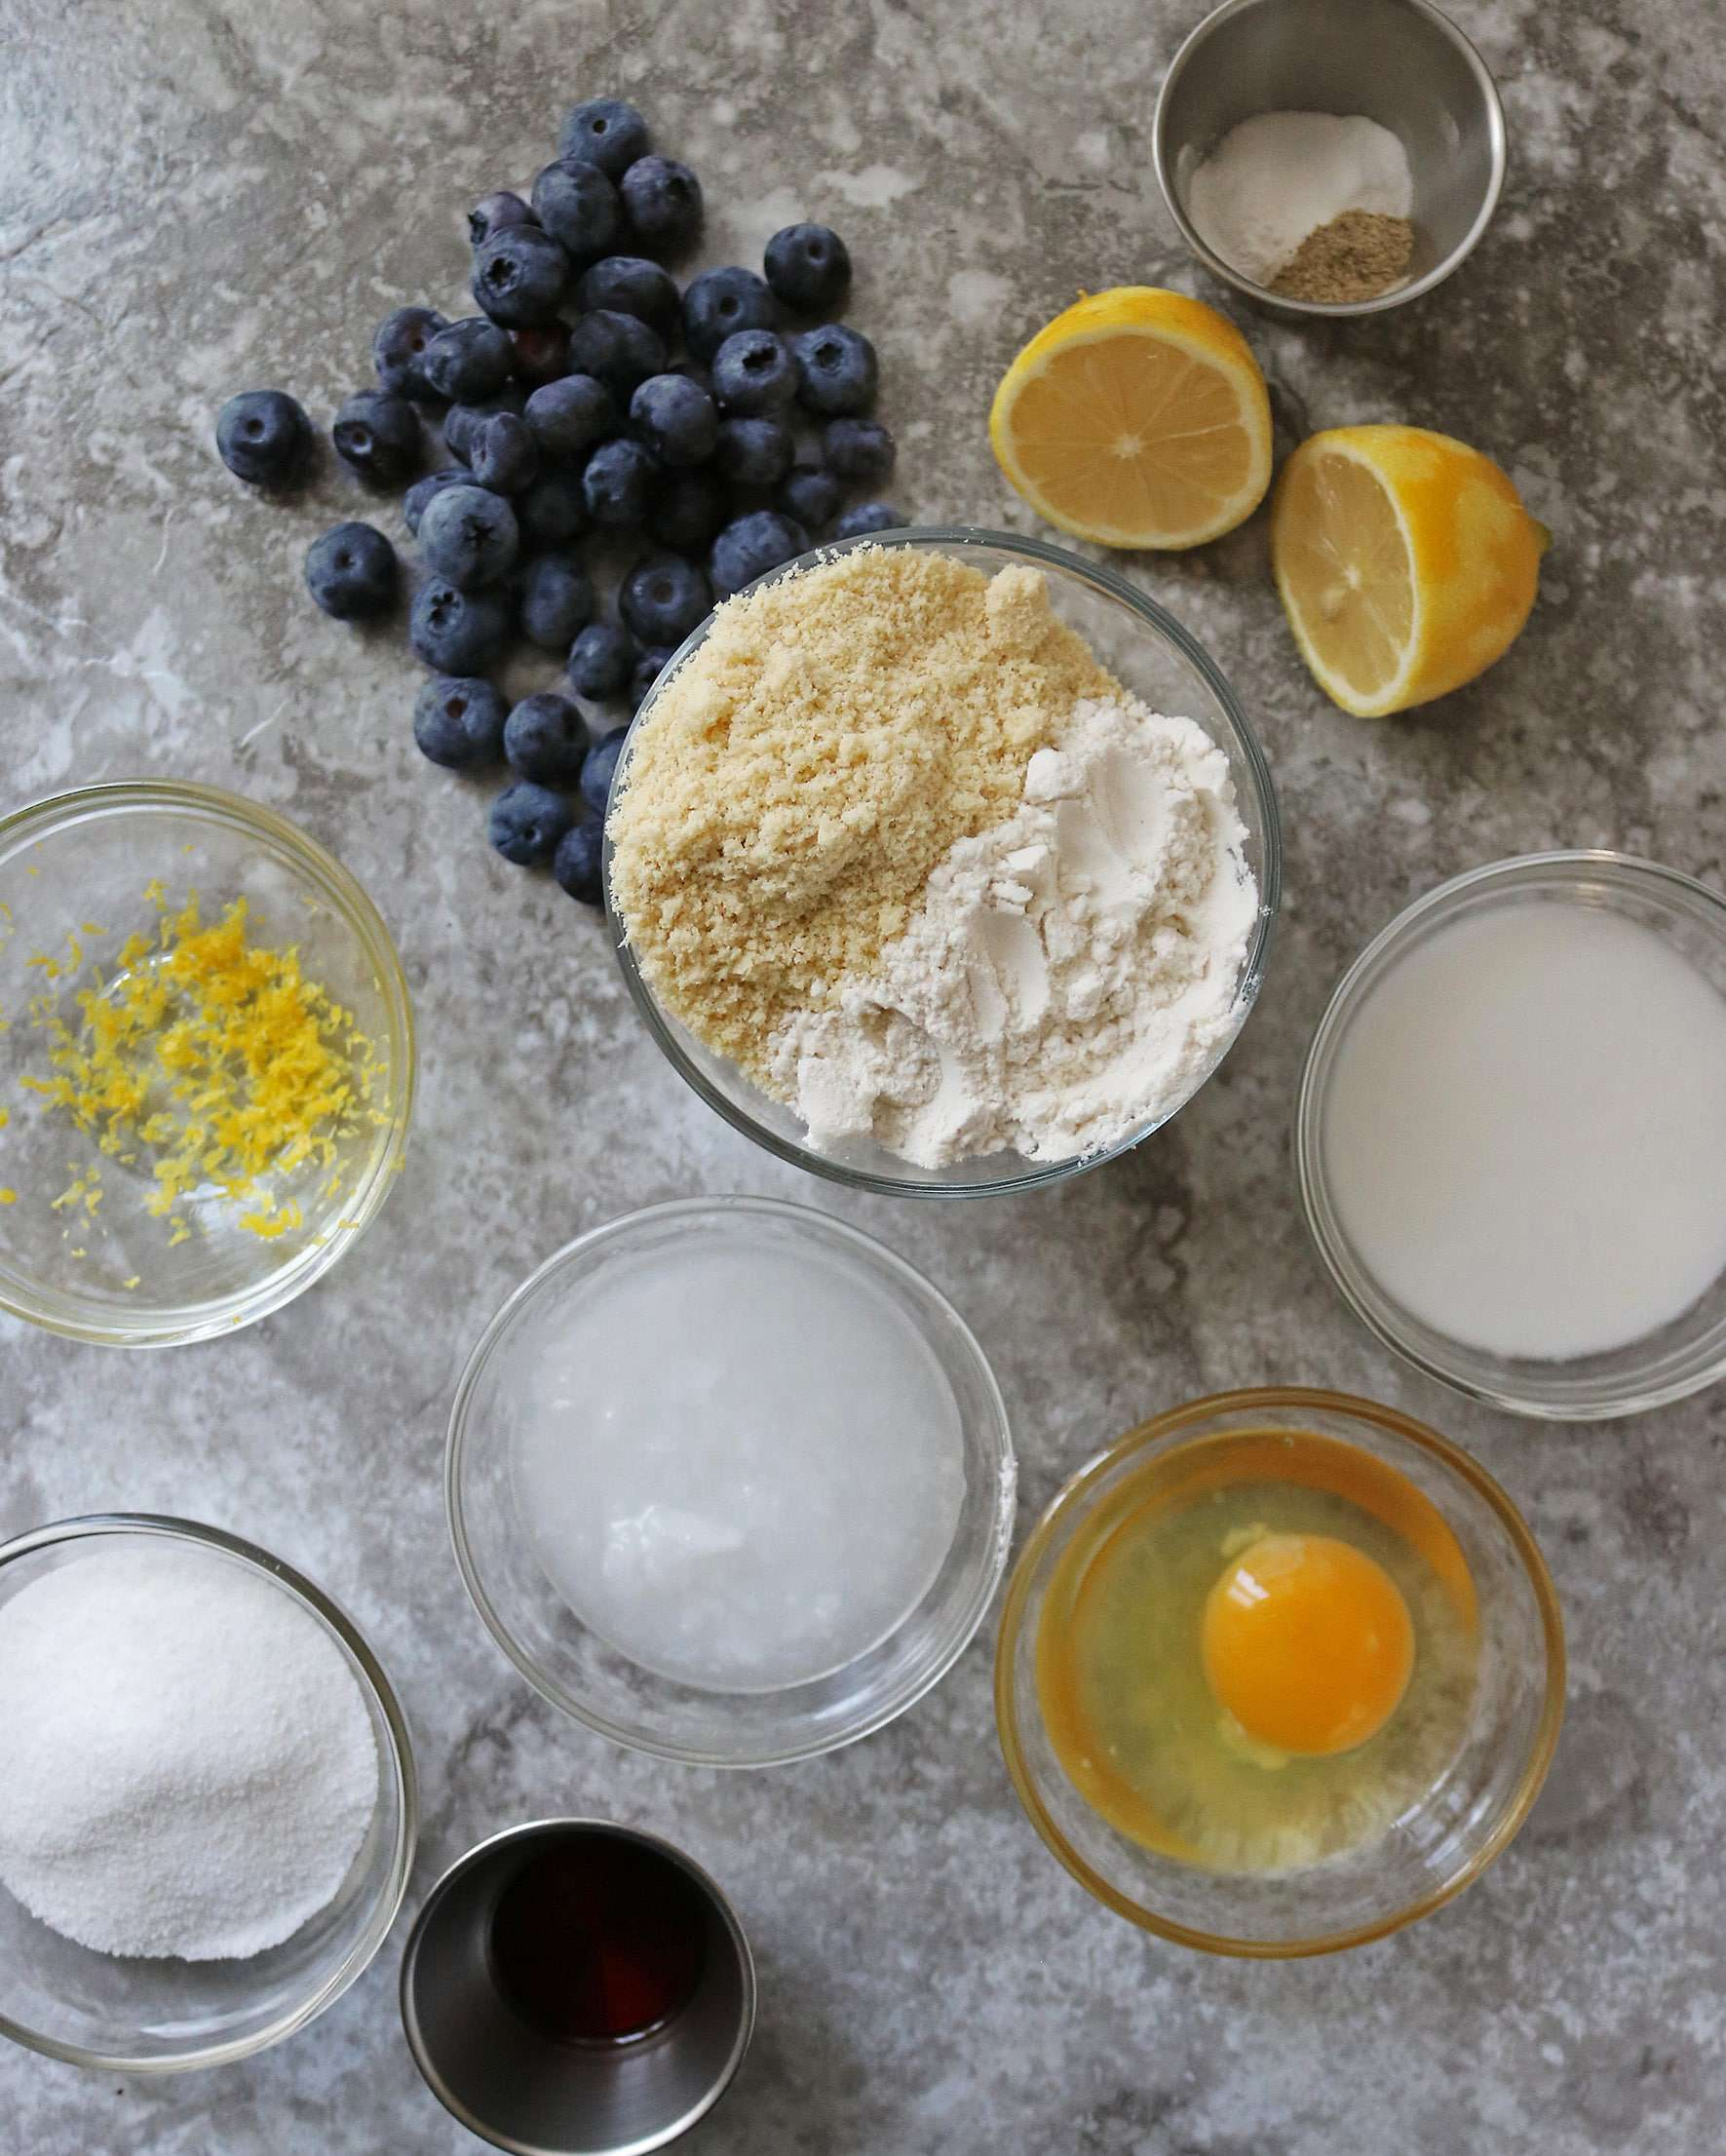 Ingredients to make Gluten Free Lemon Blueberry Muffin Tops Picture